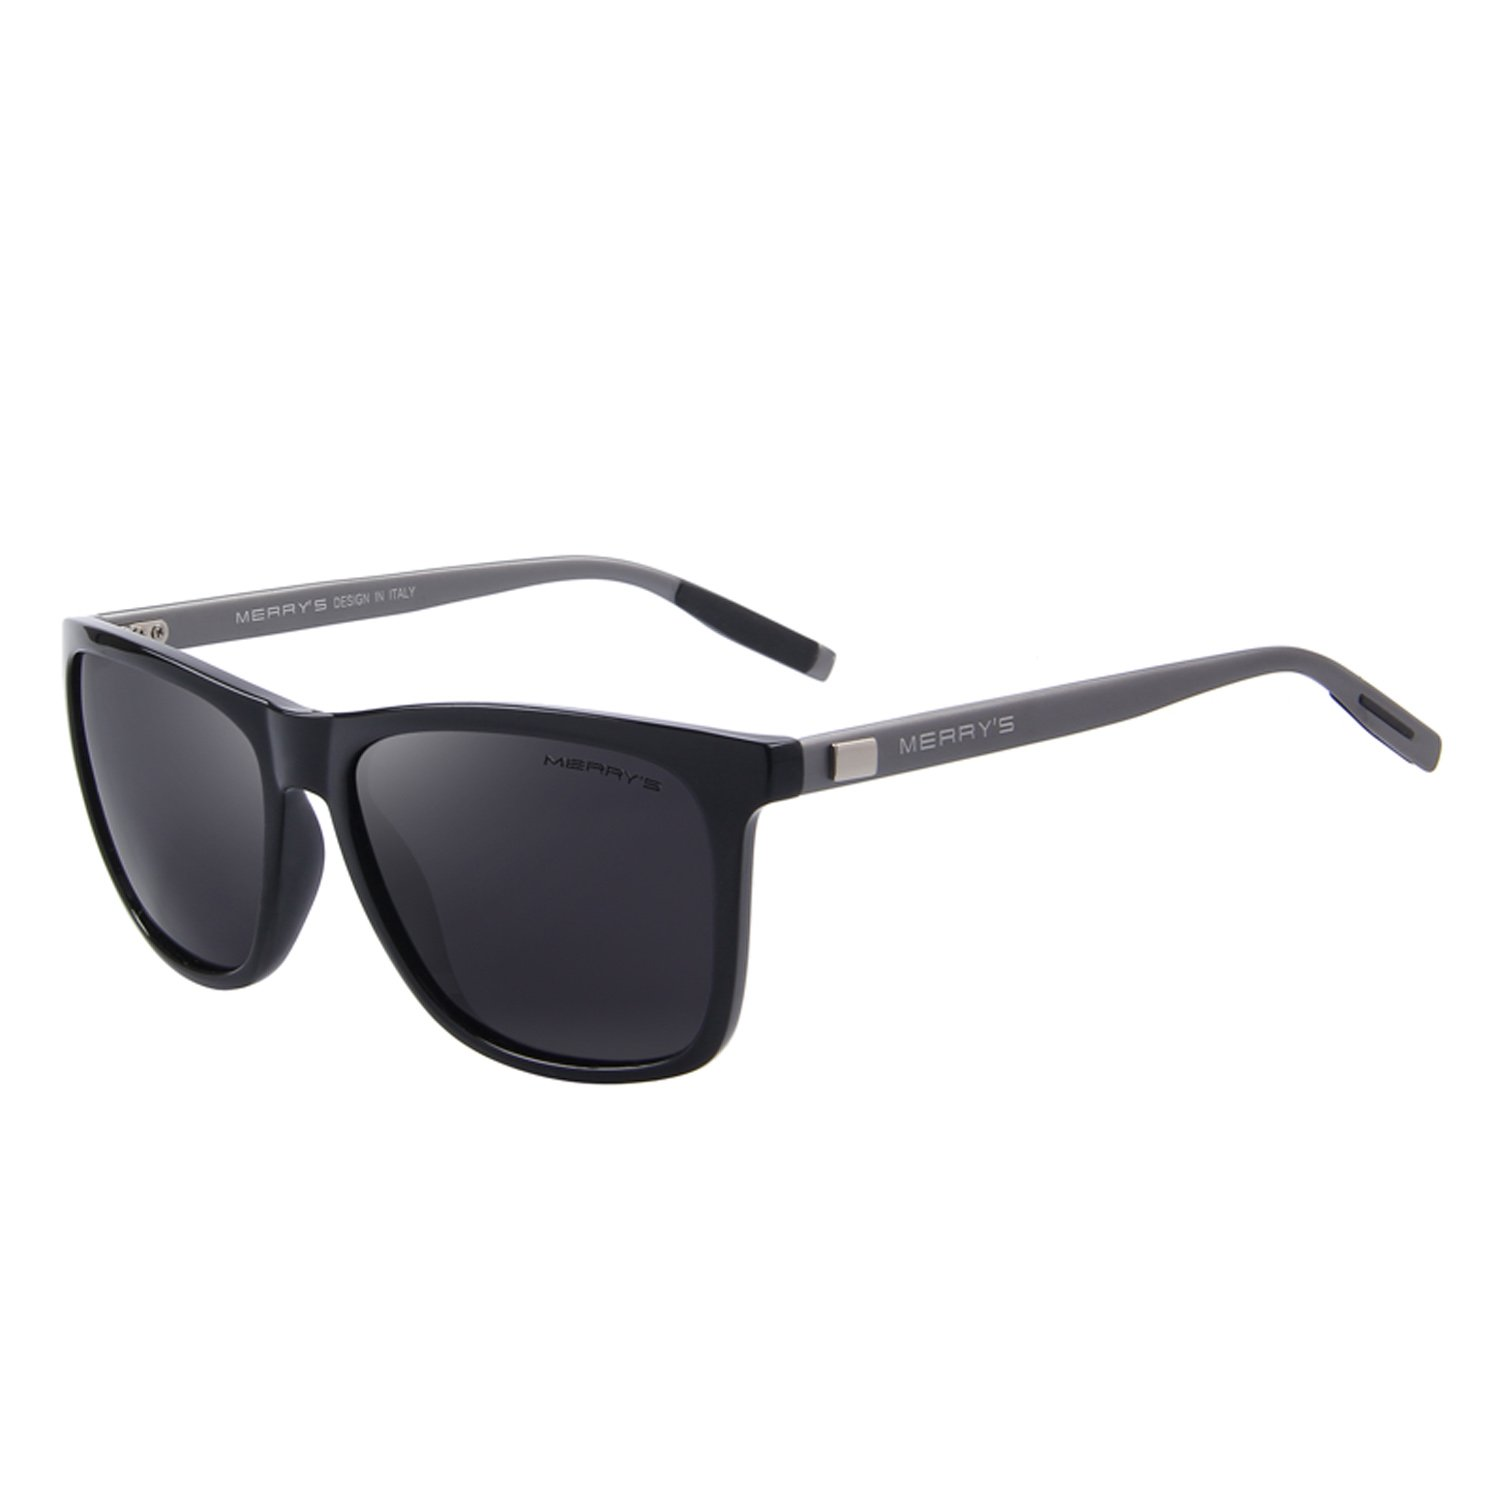 7aaa229d2b3 Amazon.com  MERRY S Unisex Polarized Aluminum Sunglasses Vintage Sun Glasses  For Men Women S8286 (Black